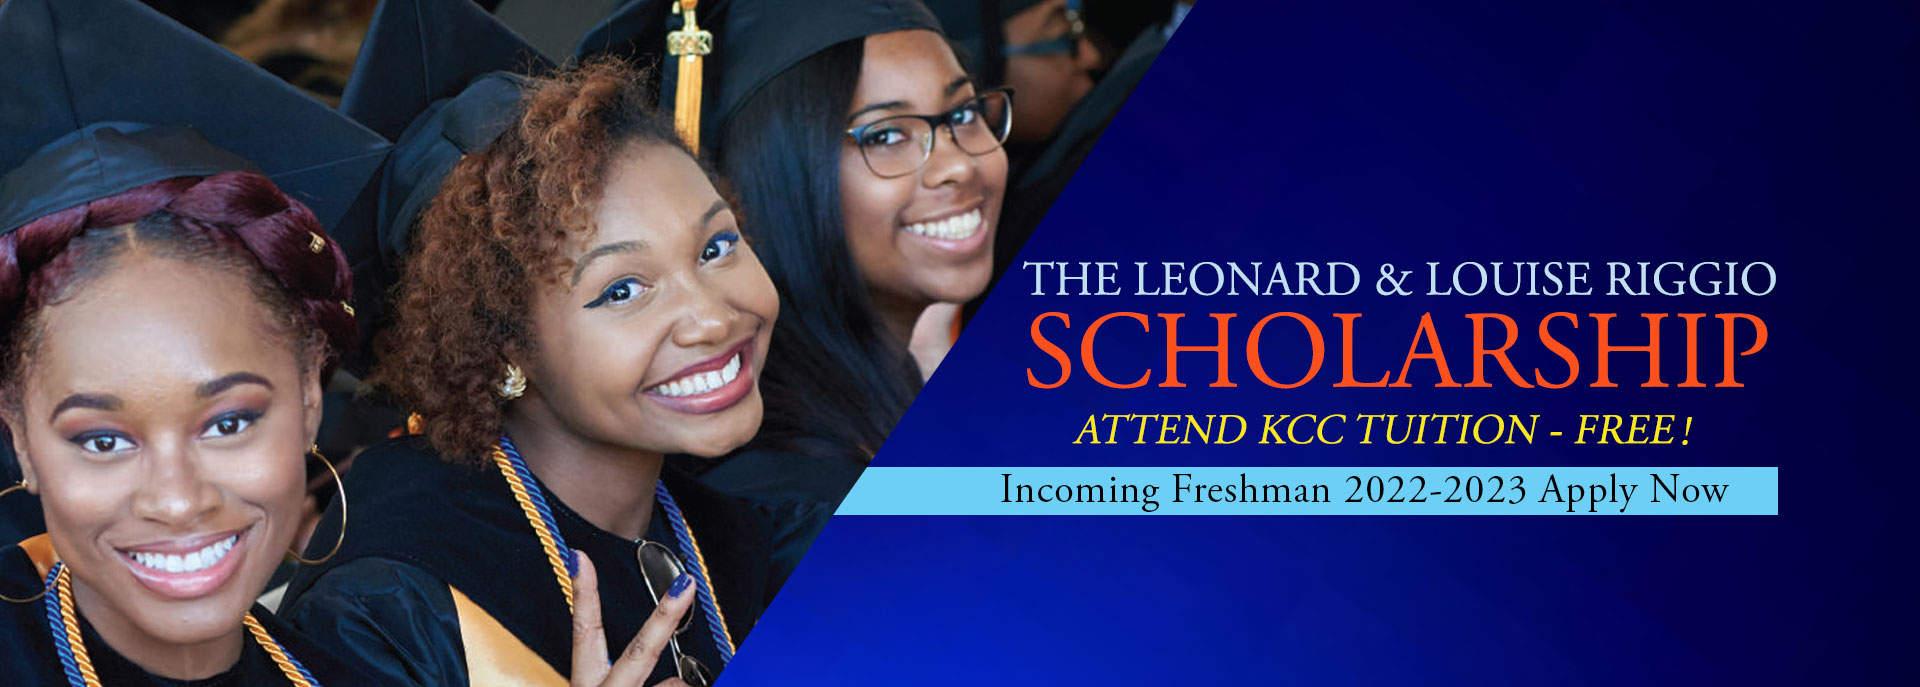 The Leonard and Louise Riggio Scholarship